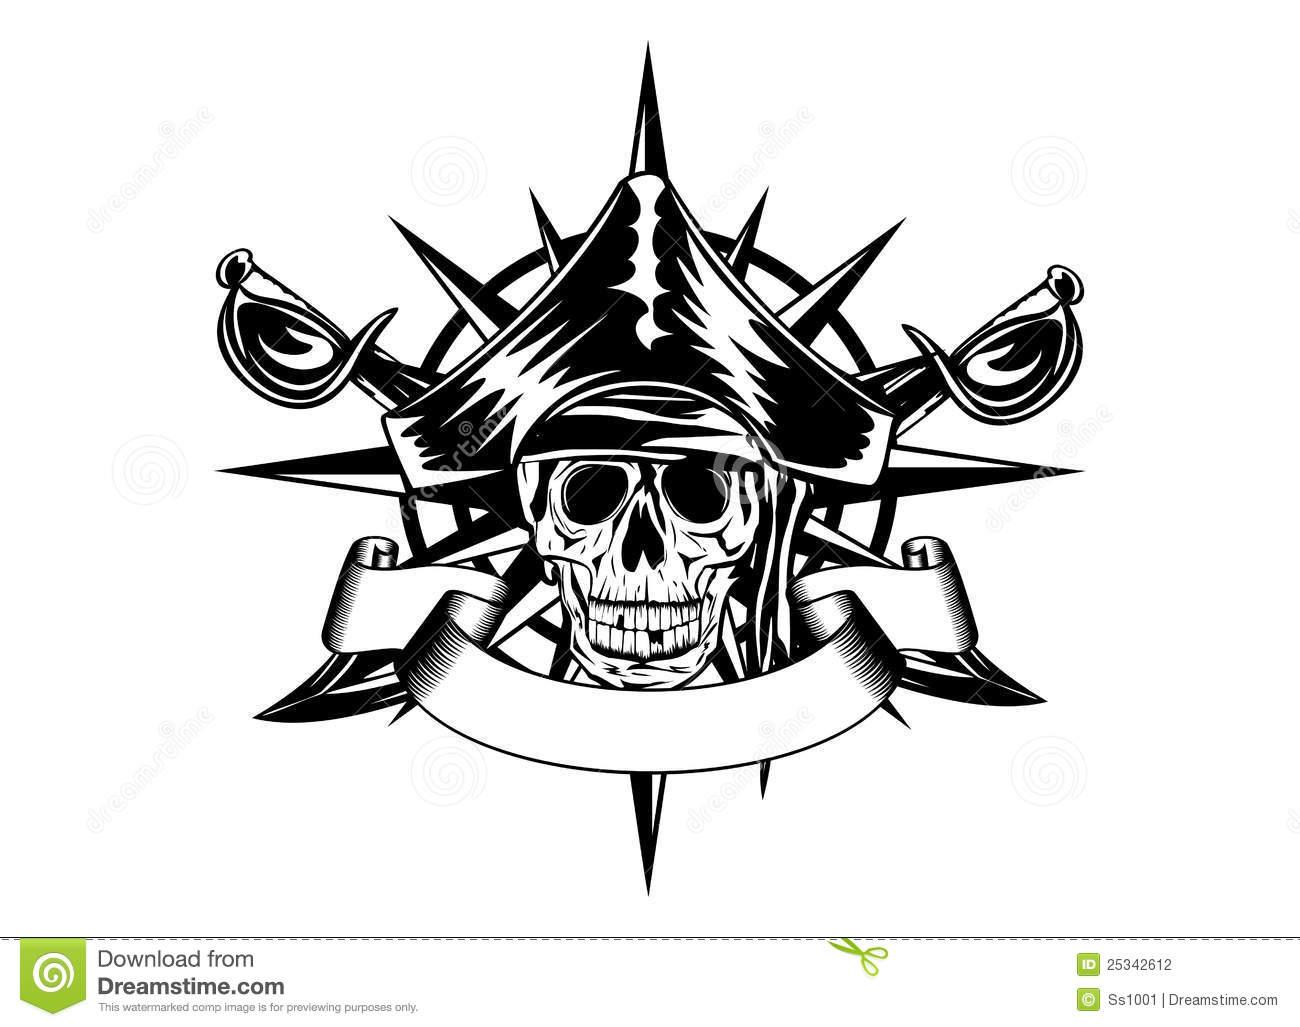 Pirates Of The Caribbean clipart compass The tattoo tattoo caribbean pirates